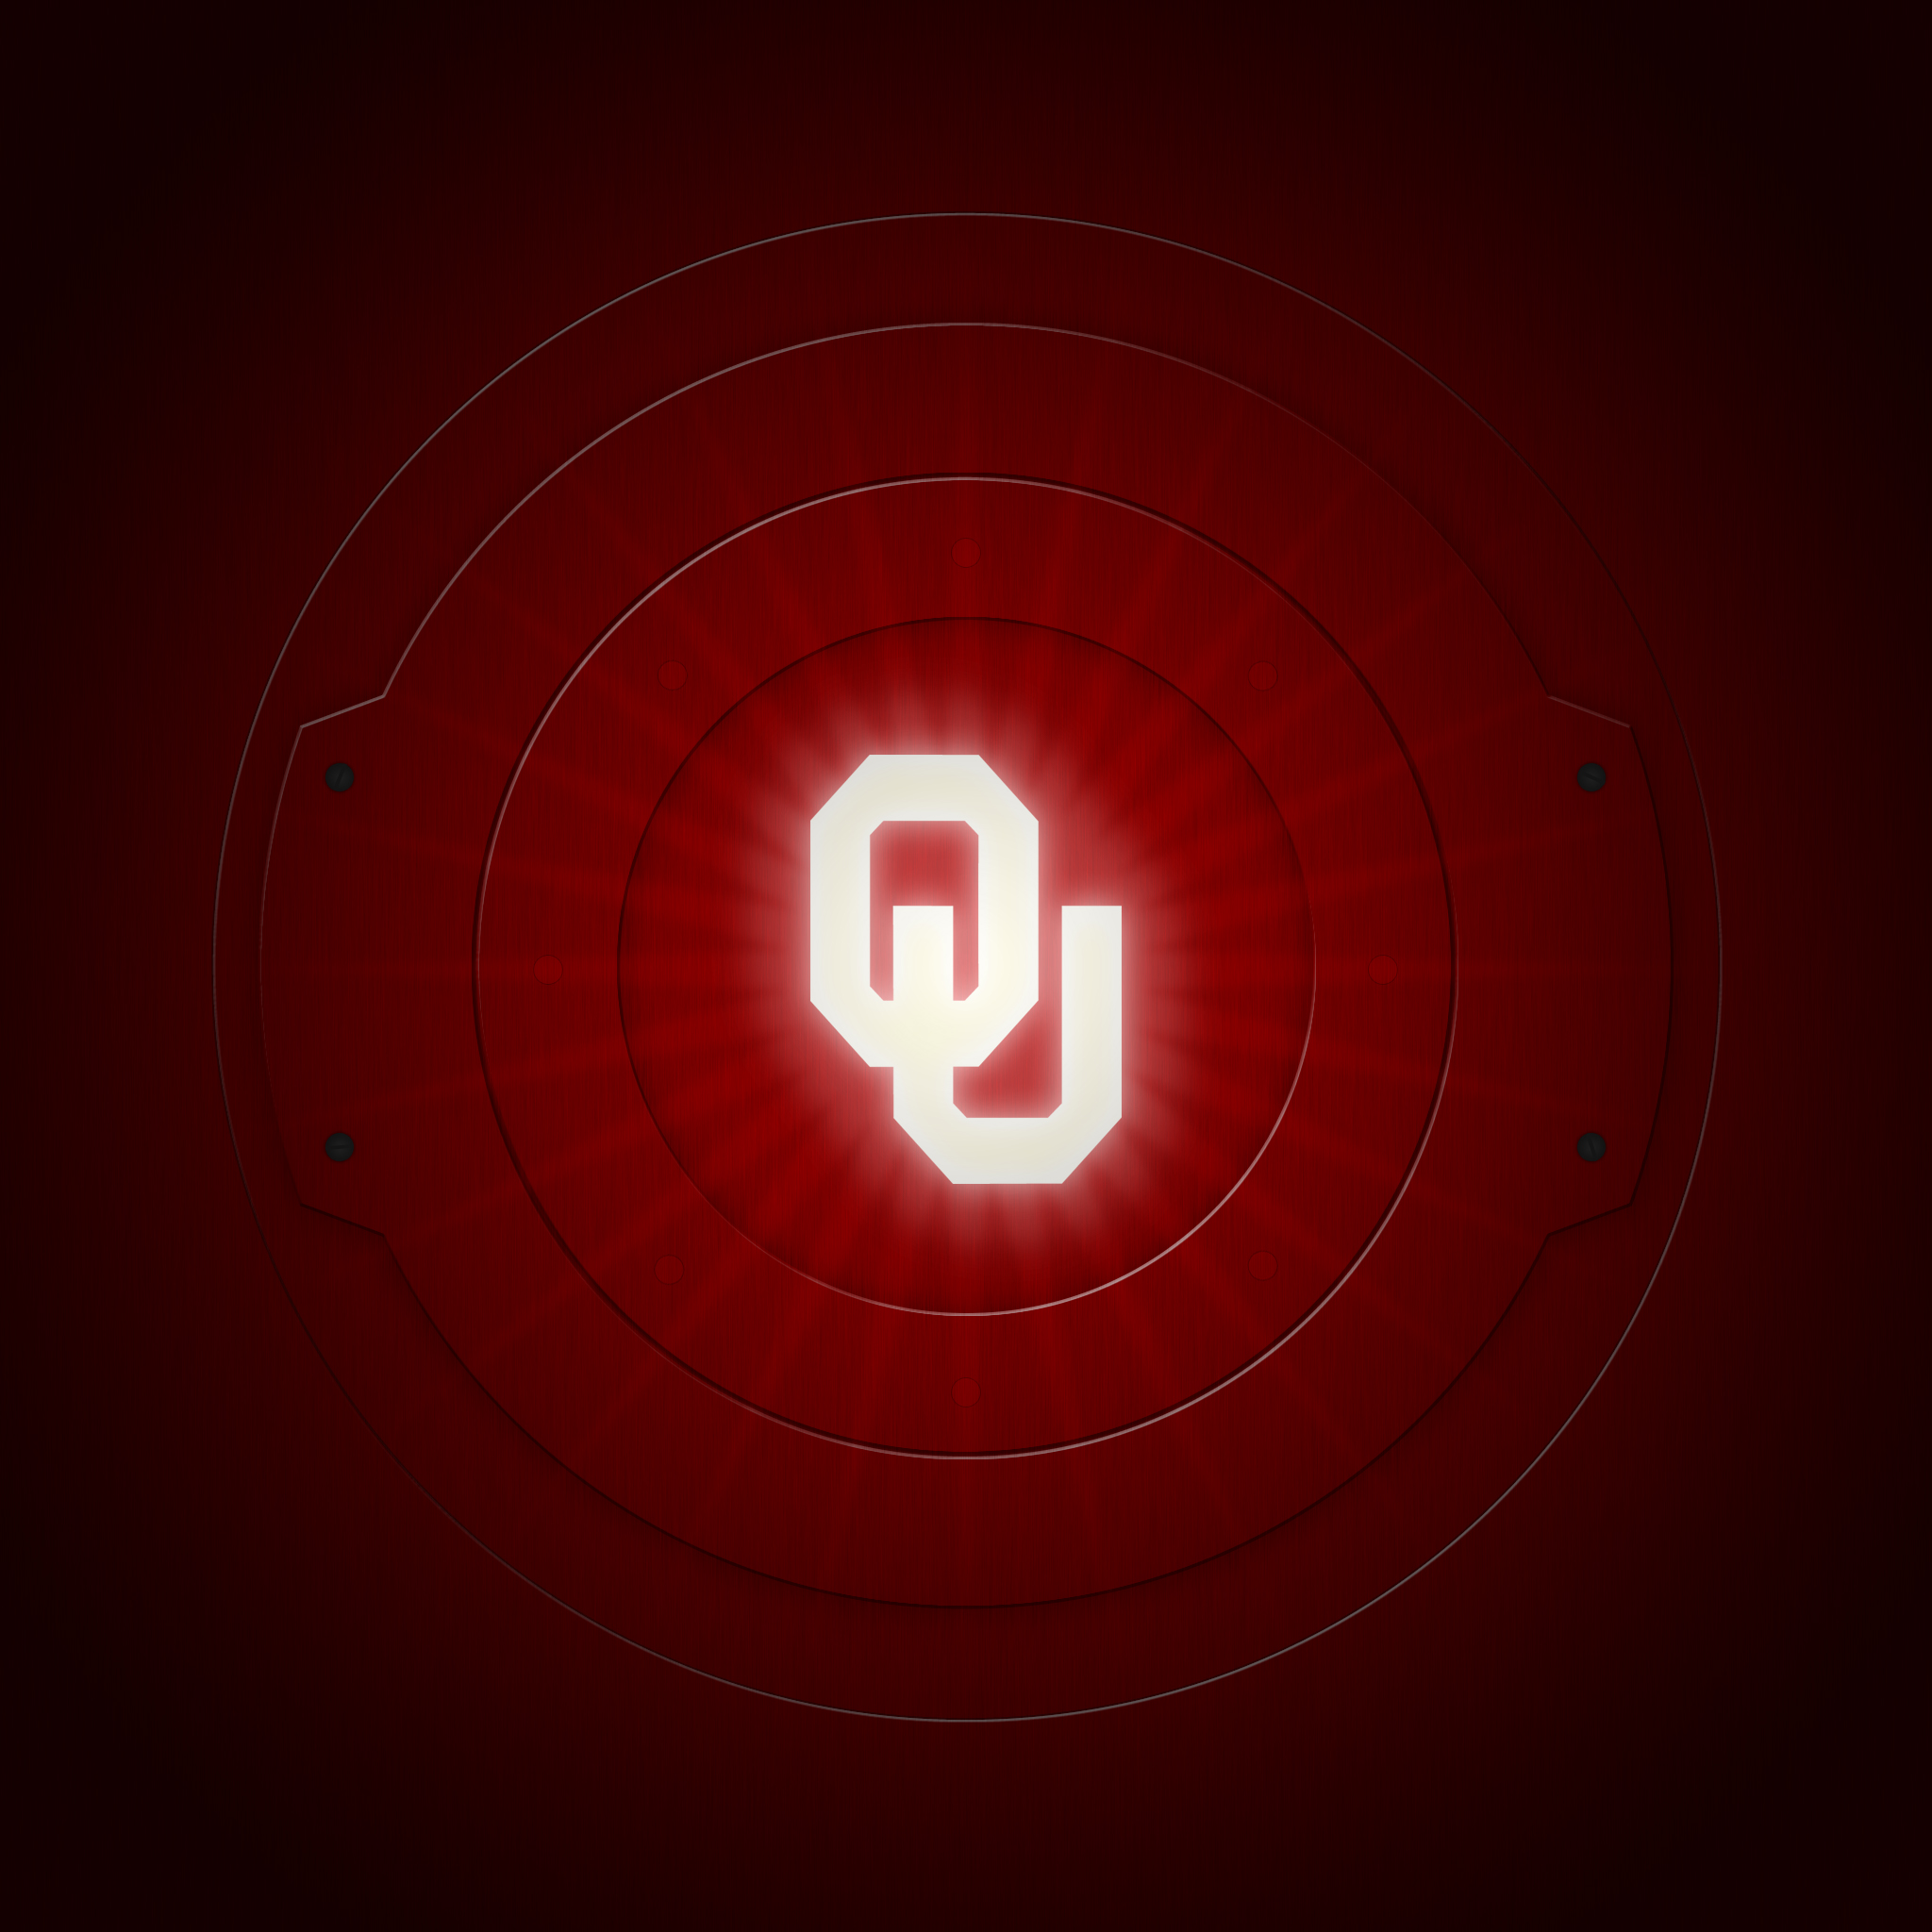 Oklahoma Sooners Wallpaper Ipad ou powerup iphone 5 2048x2048